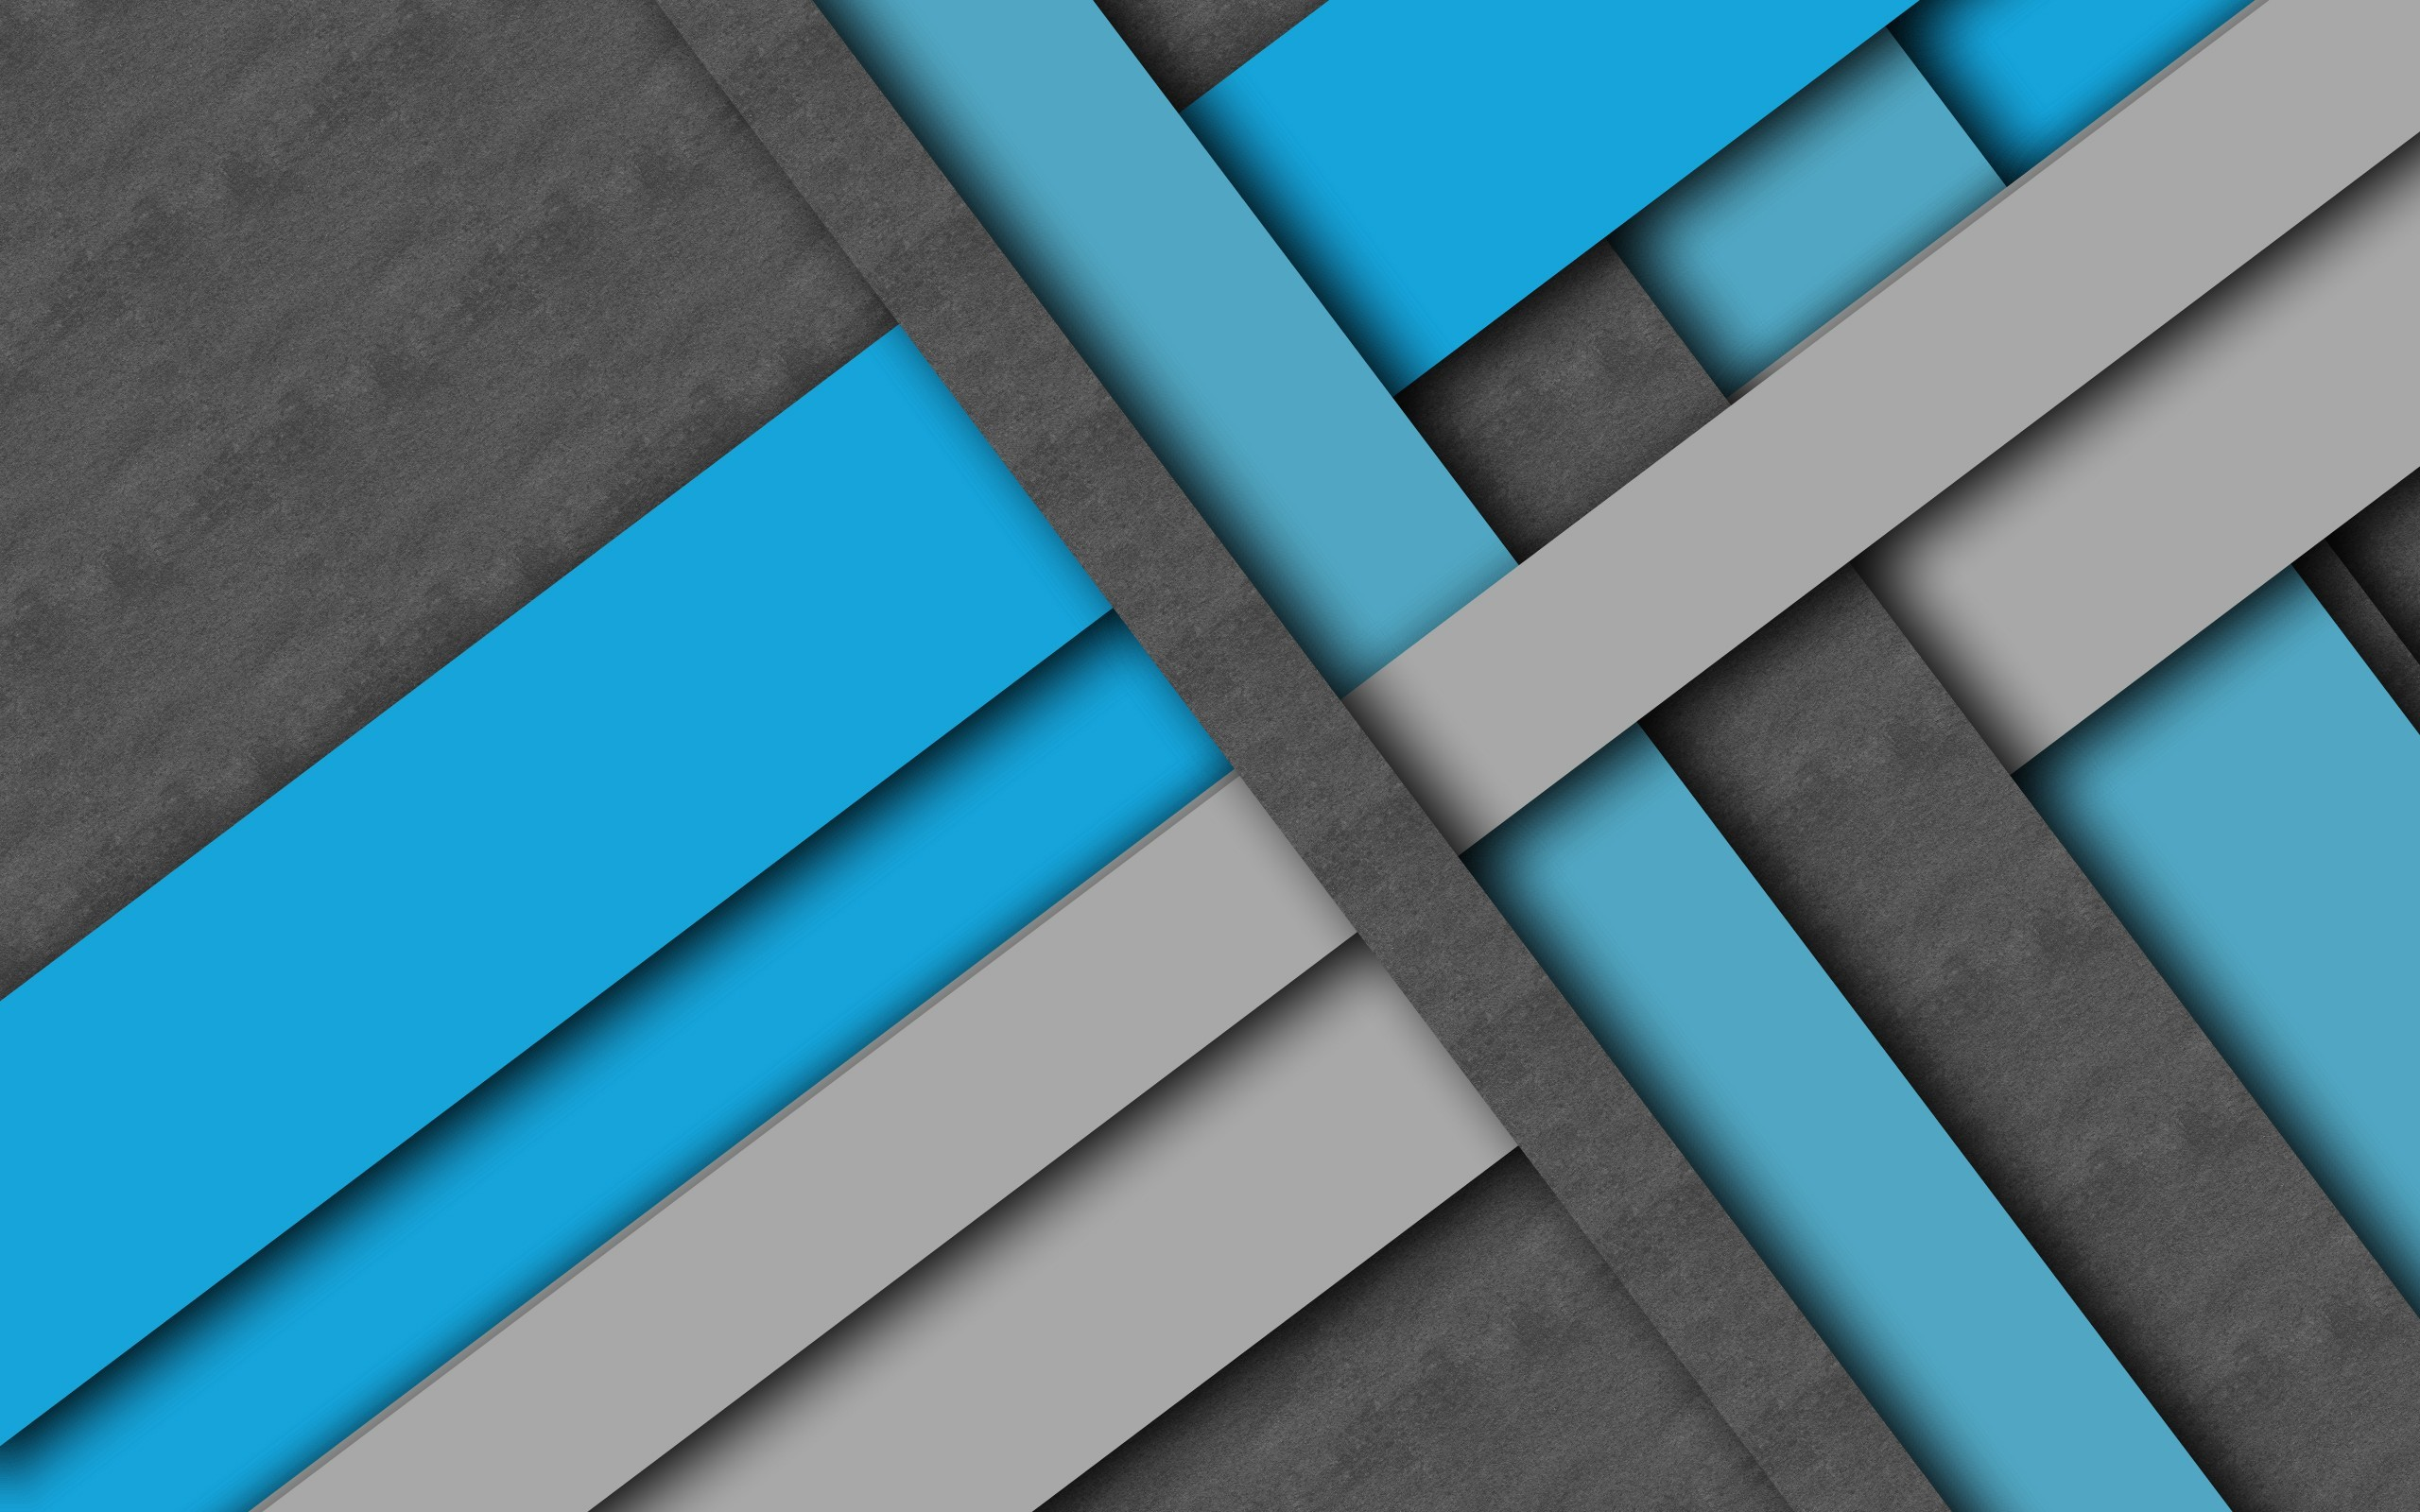 2560x1440 Material Design Line Texture HD 1440P Resolution ...